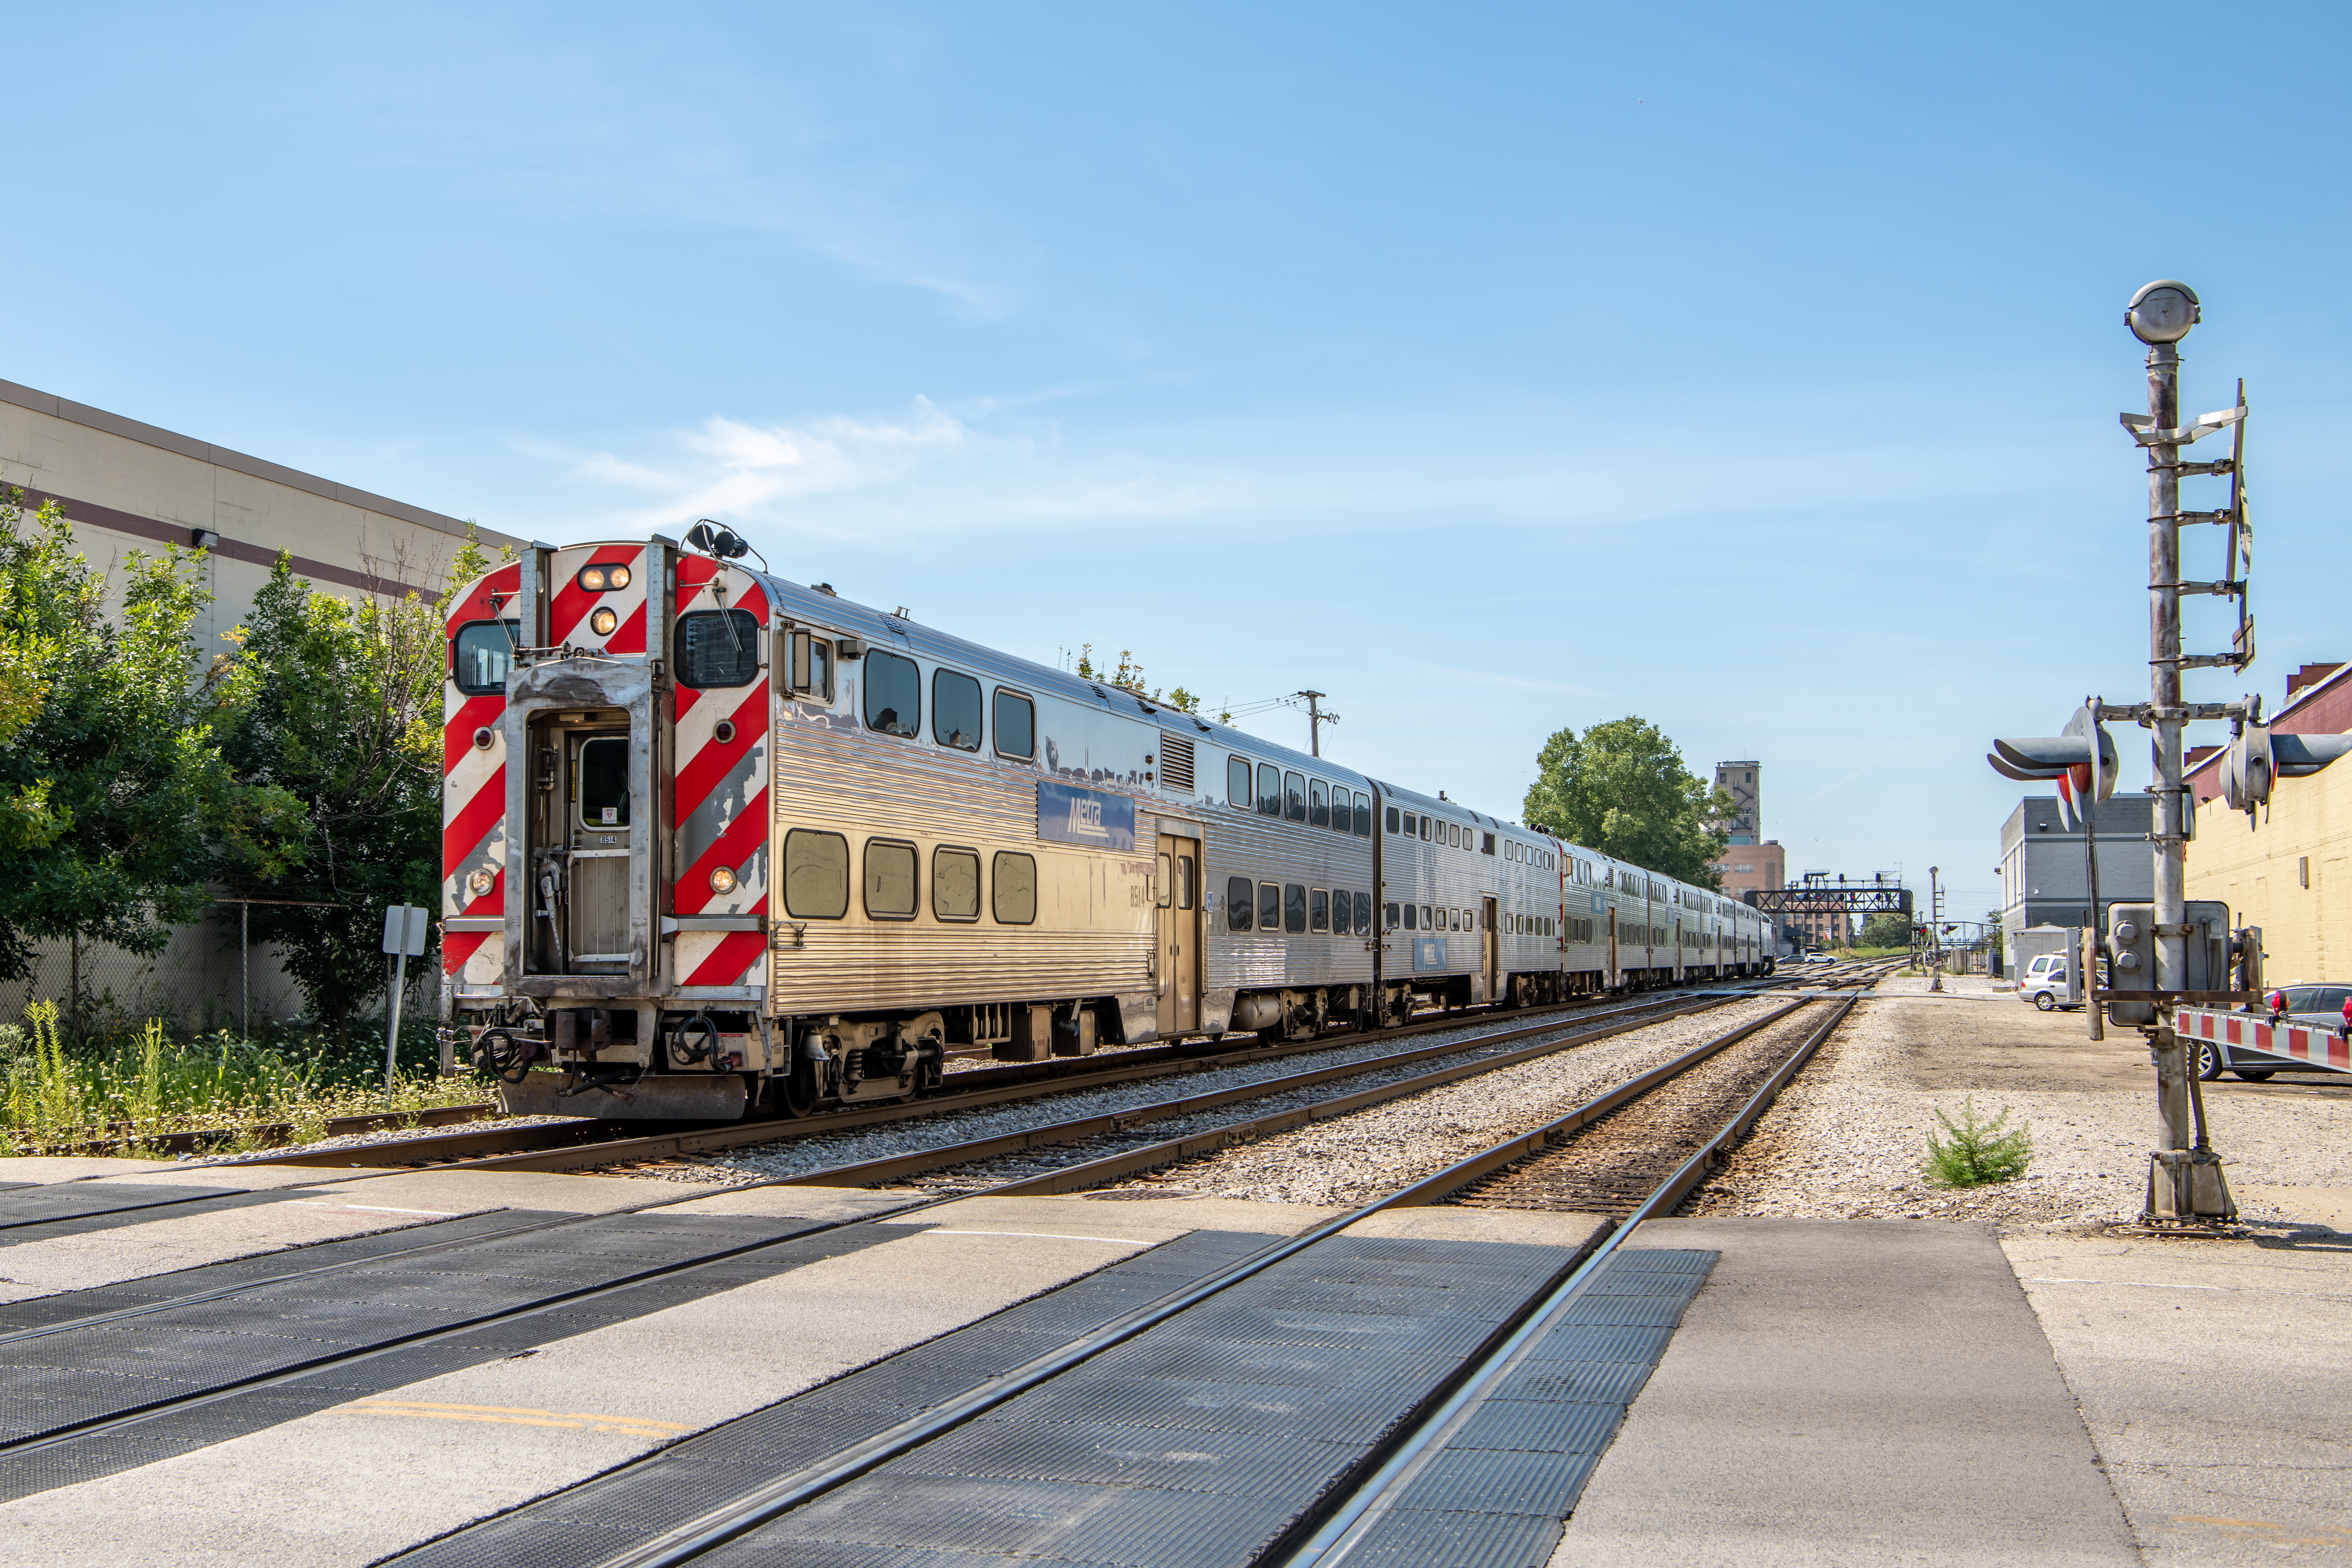 Metra won't increase fares in 2020 and will prioritize backlog of improvements